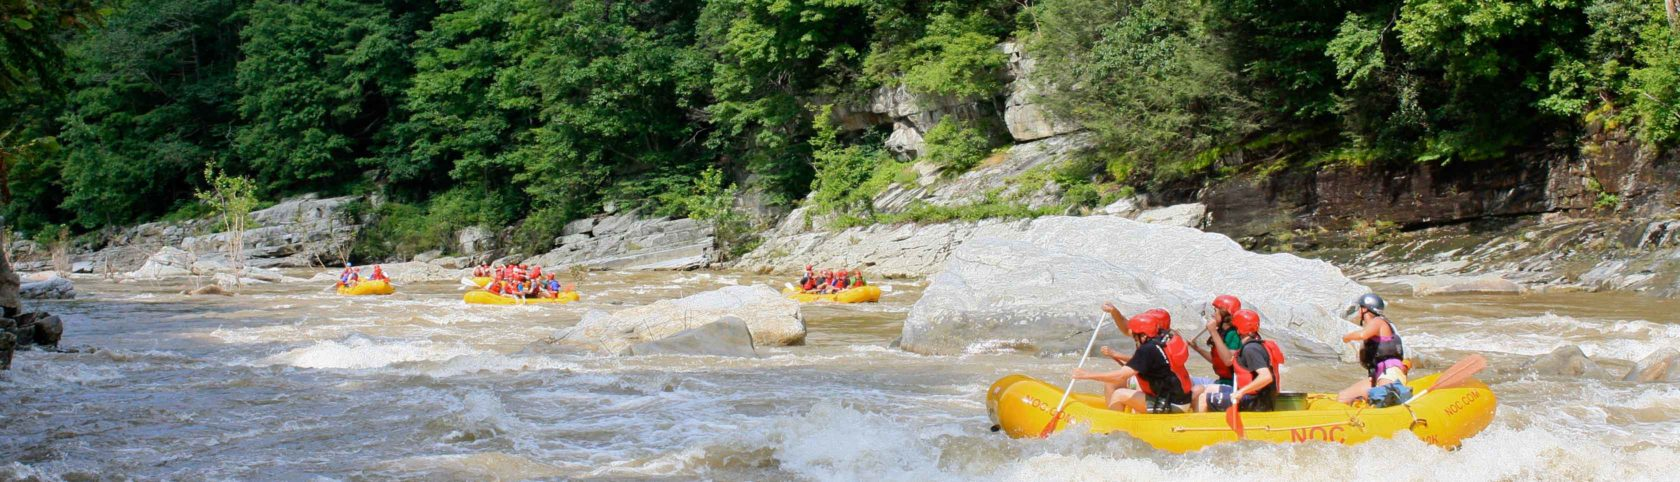 Rafters on the Nolichucky River